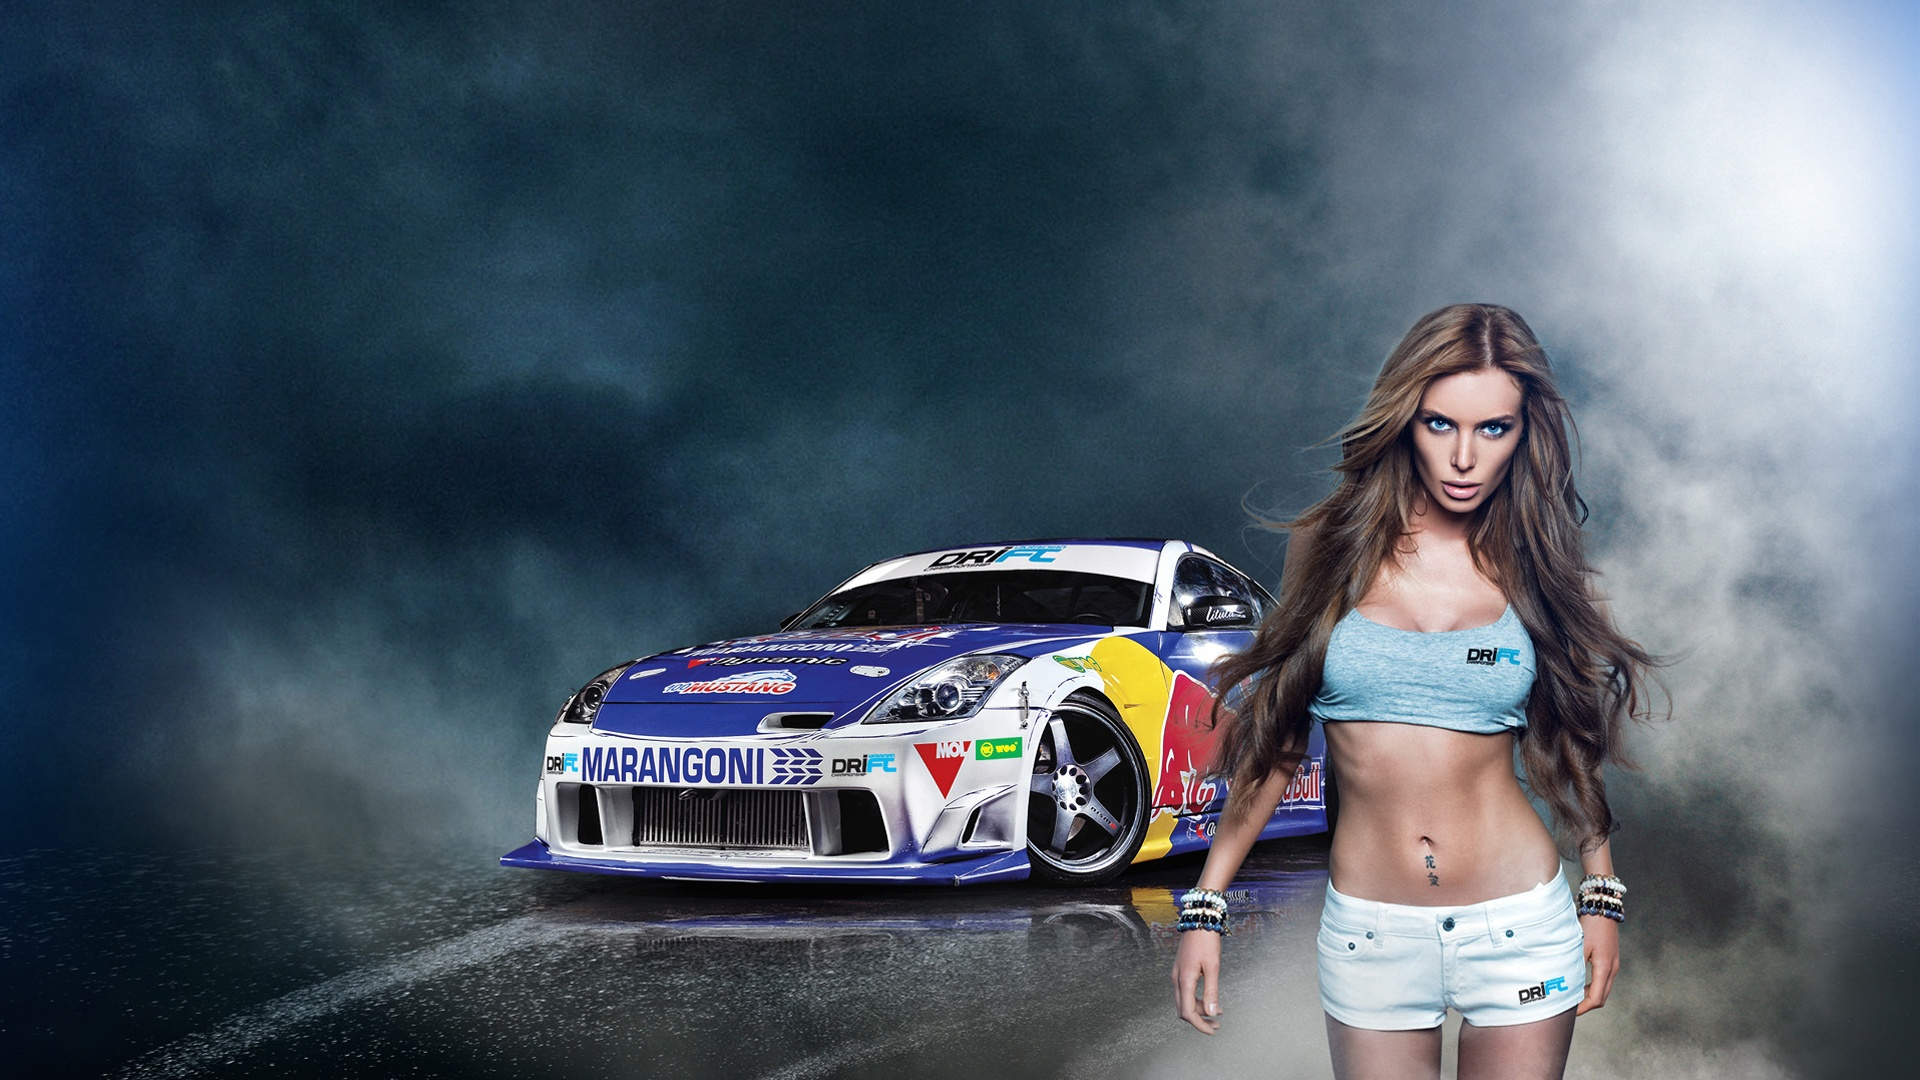 Download Car Wallpapers For Laptop 16 Wallpapers Car Girl Pixel Wallpaper Drift Girls Cars